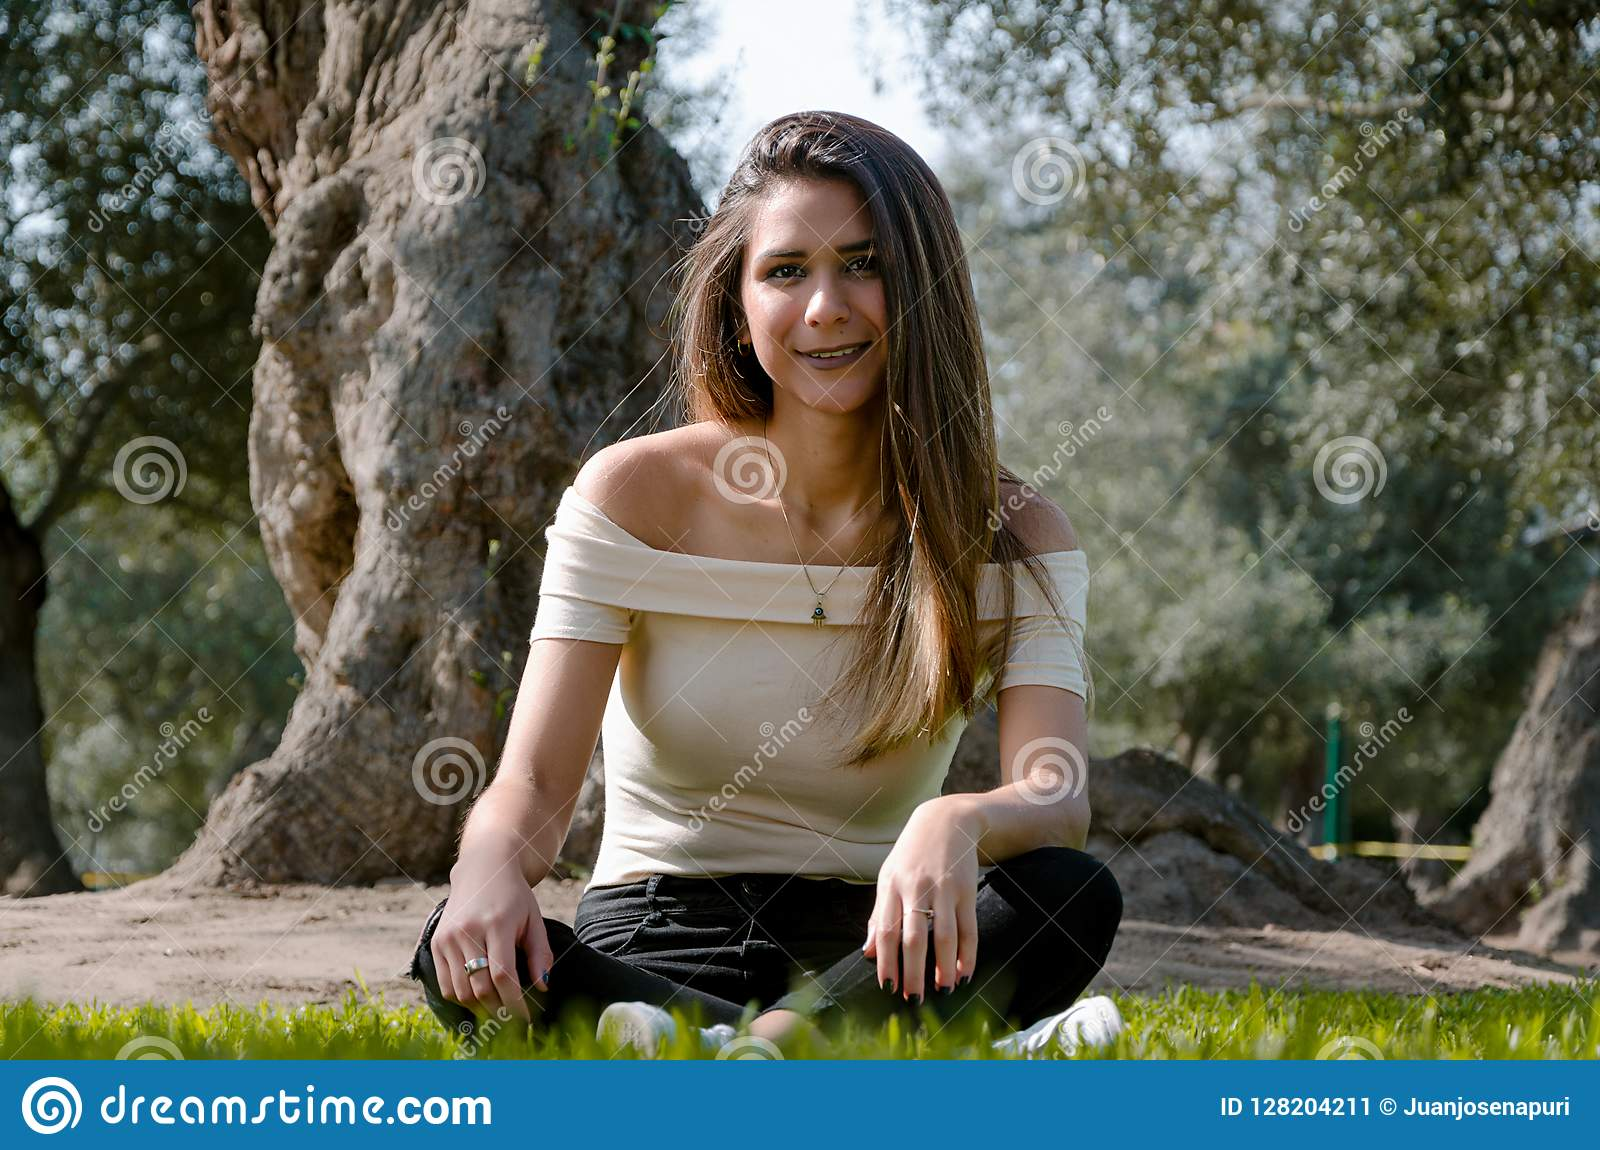 Stylish cheerful brunette sitting under a tree in a park